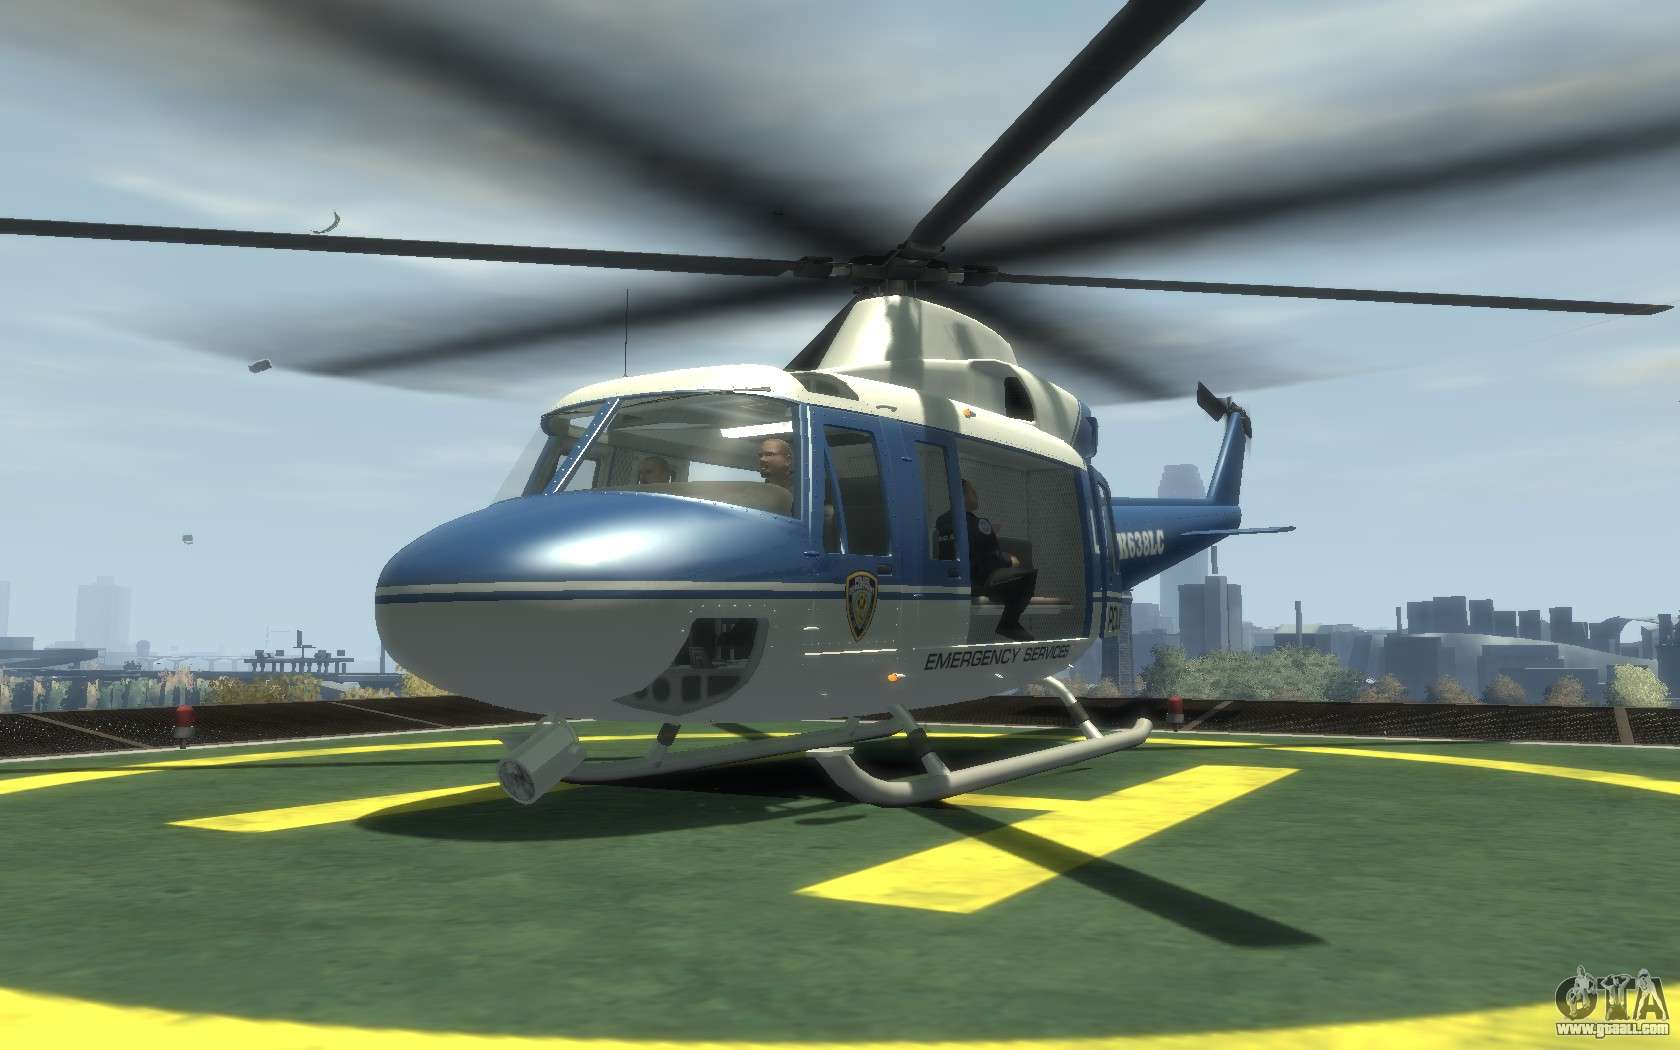 helicopter mod 1 6 4 with 61717 Gta Iii Police Valkyrie Hd on 16916 Mi 26 additionally 1124 Thx Helicopter also 4k Us Park Ranger And Us Forest Ranger Skins For Ford Explorer And Ford Raptor furthermore 70926 Police Cars Pack Els likewise 7710 Five Nights At Freddys 1710.